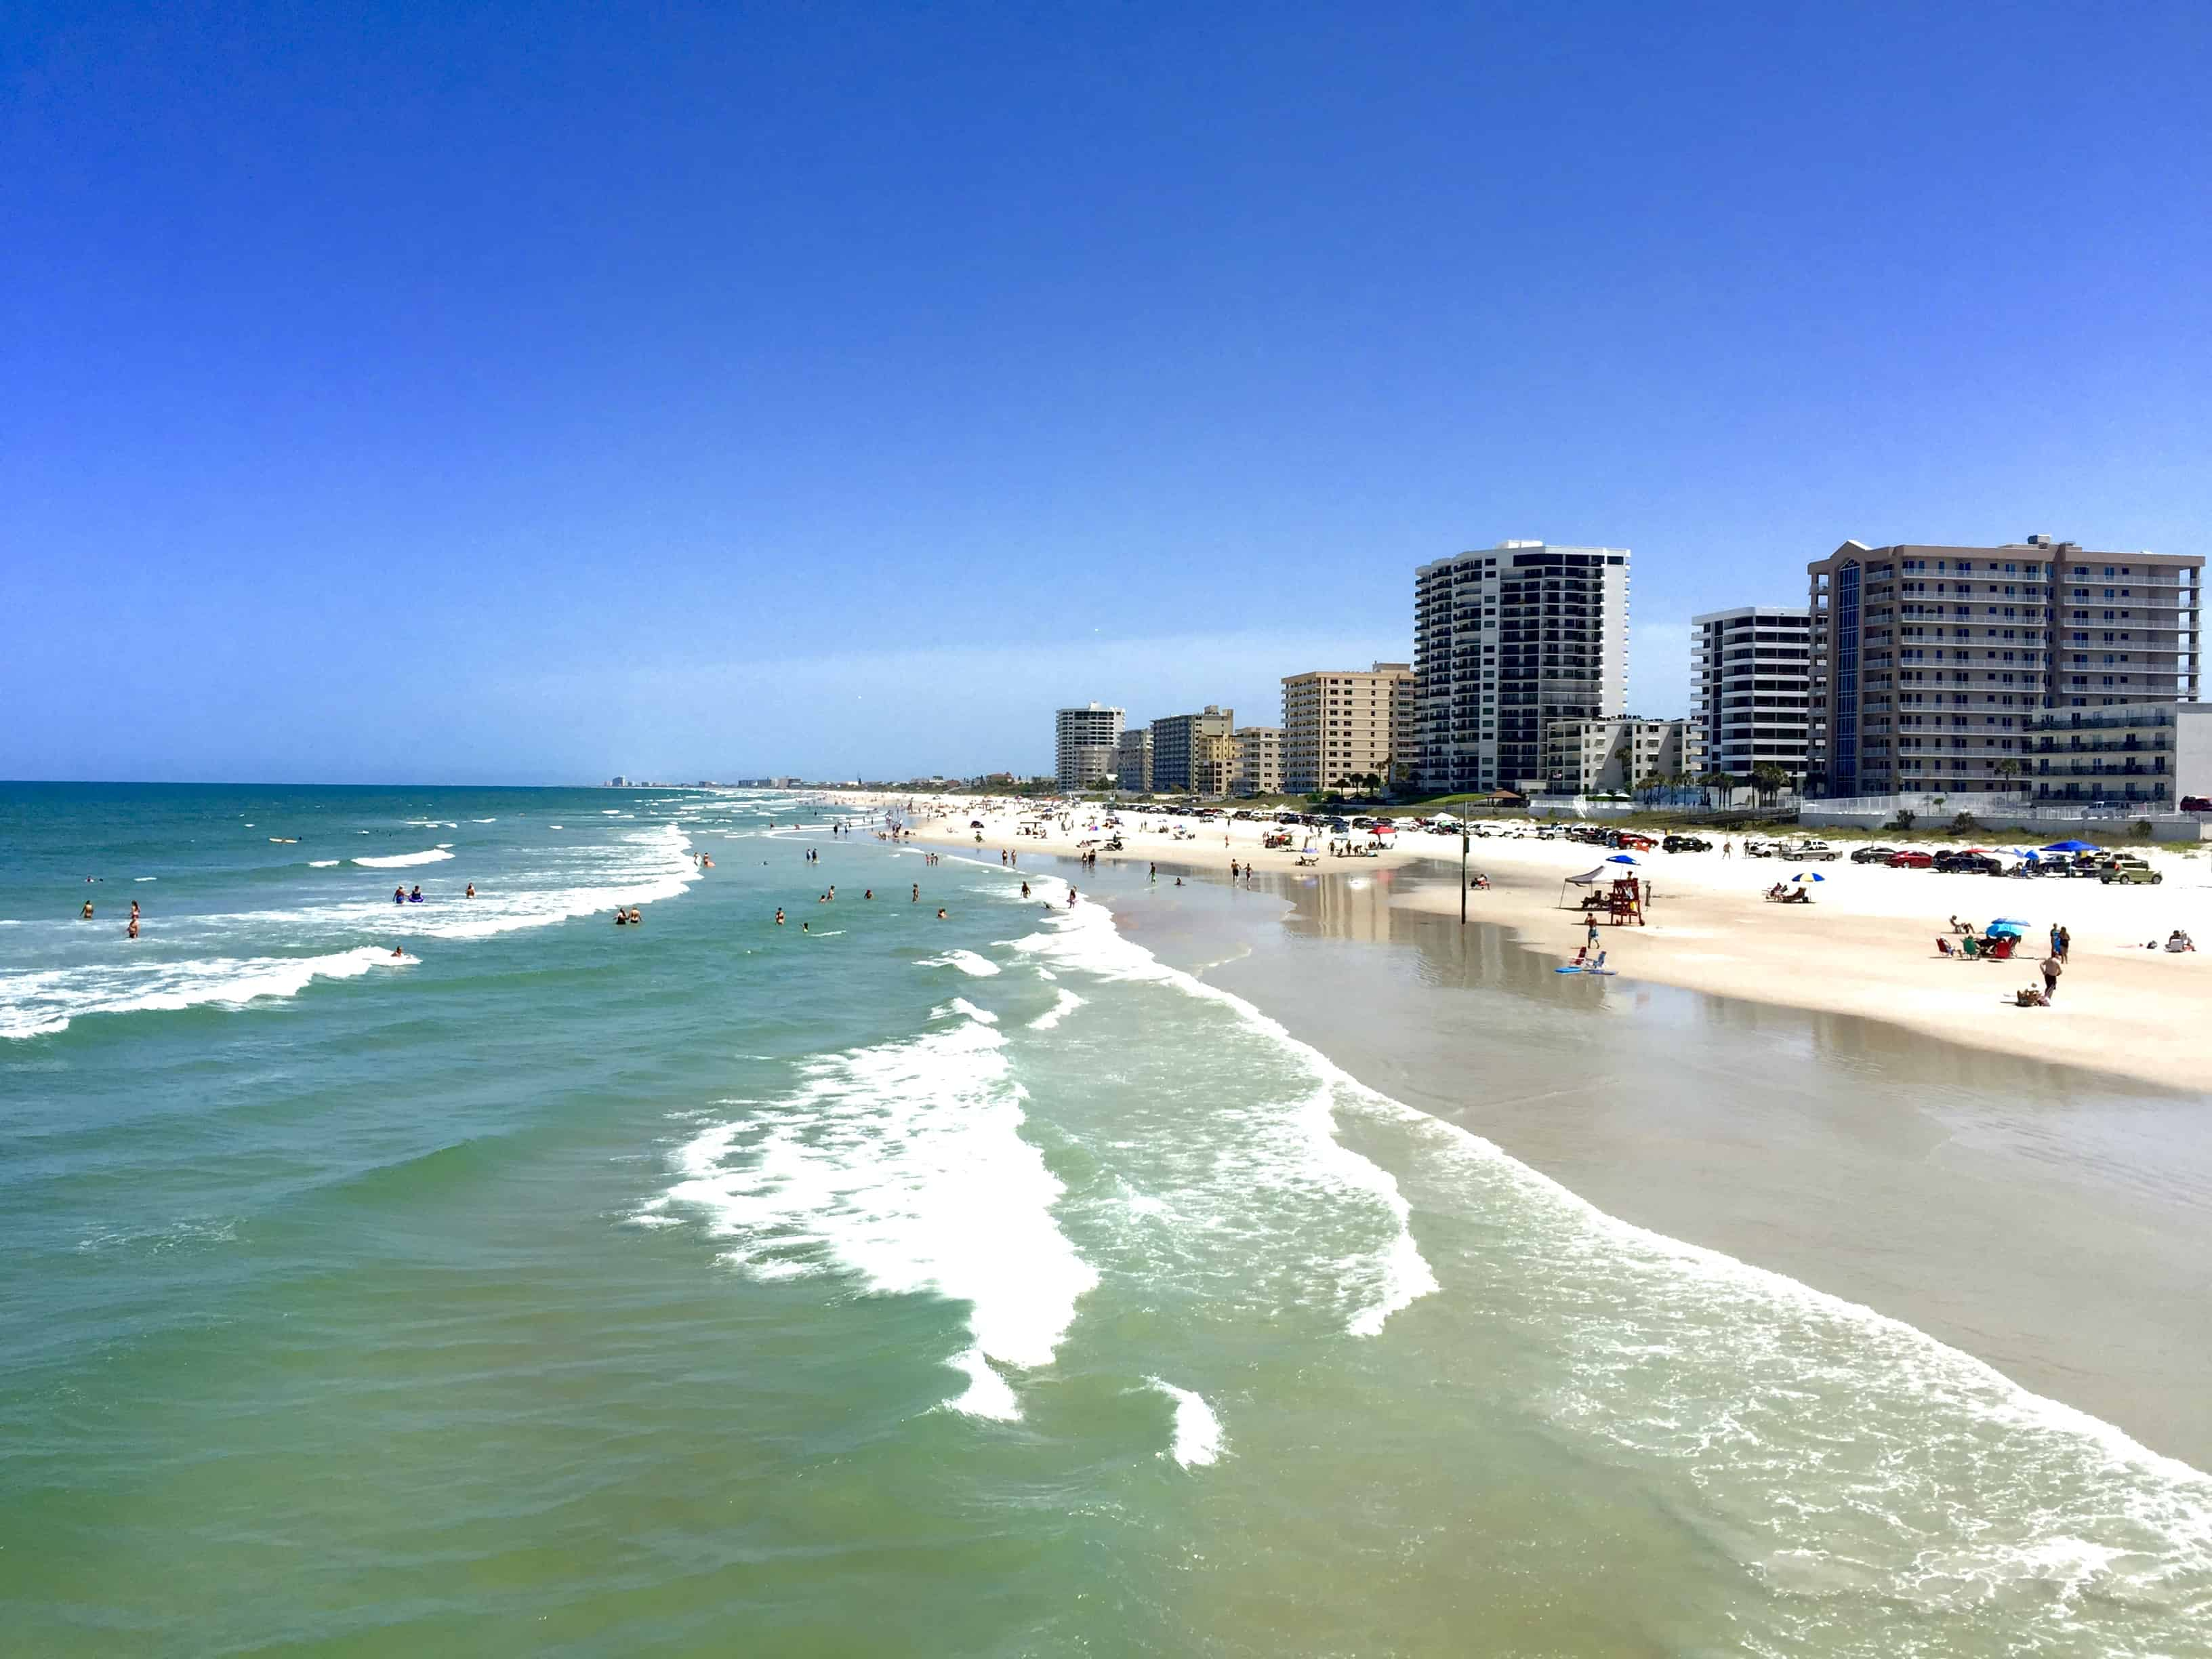 #ad Daytona Beach - The Perfect Fall Getaway! There's something for everyone here! | Tastefulventure.com #DaytonaBeach, #LoveFL